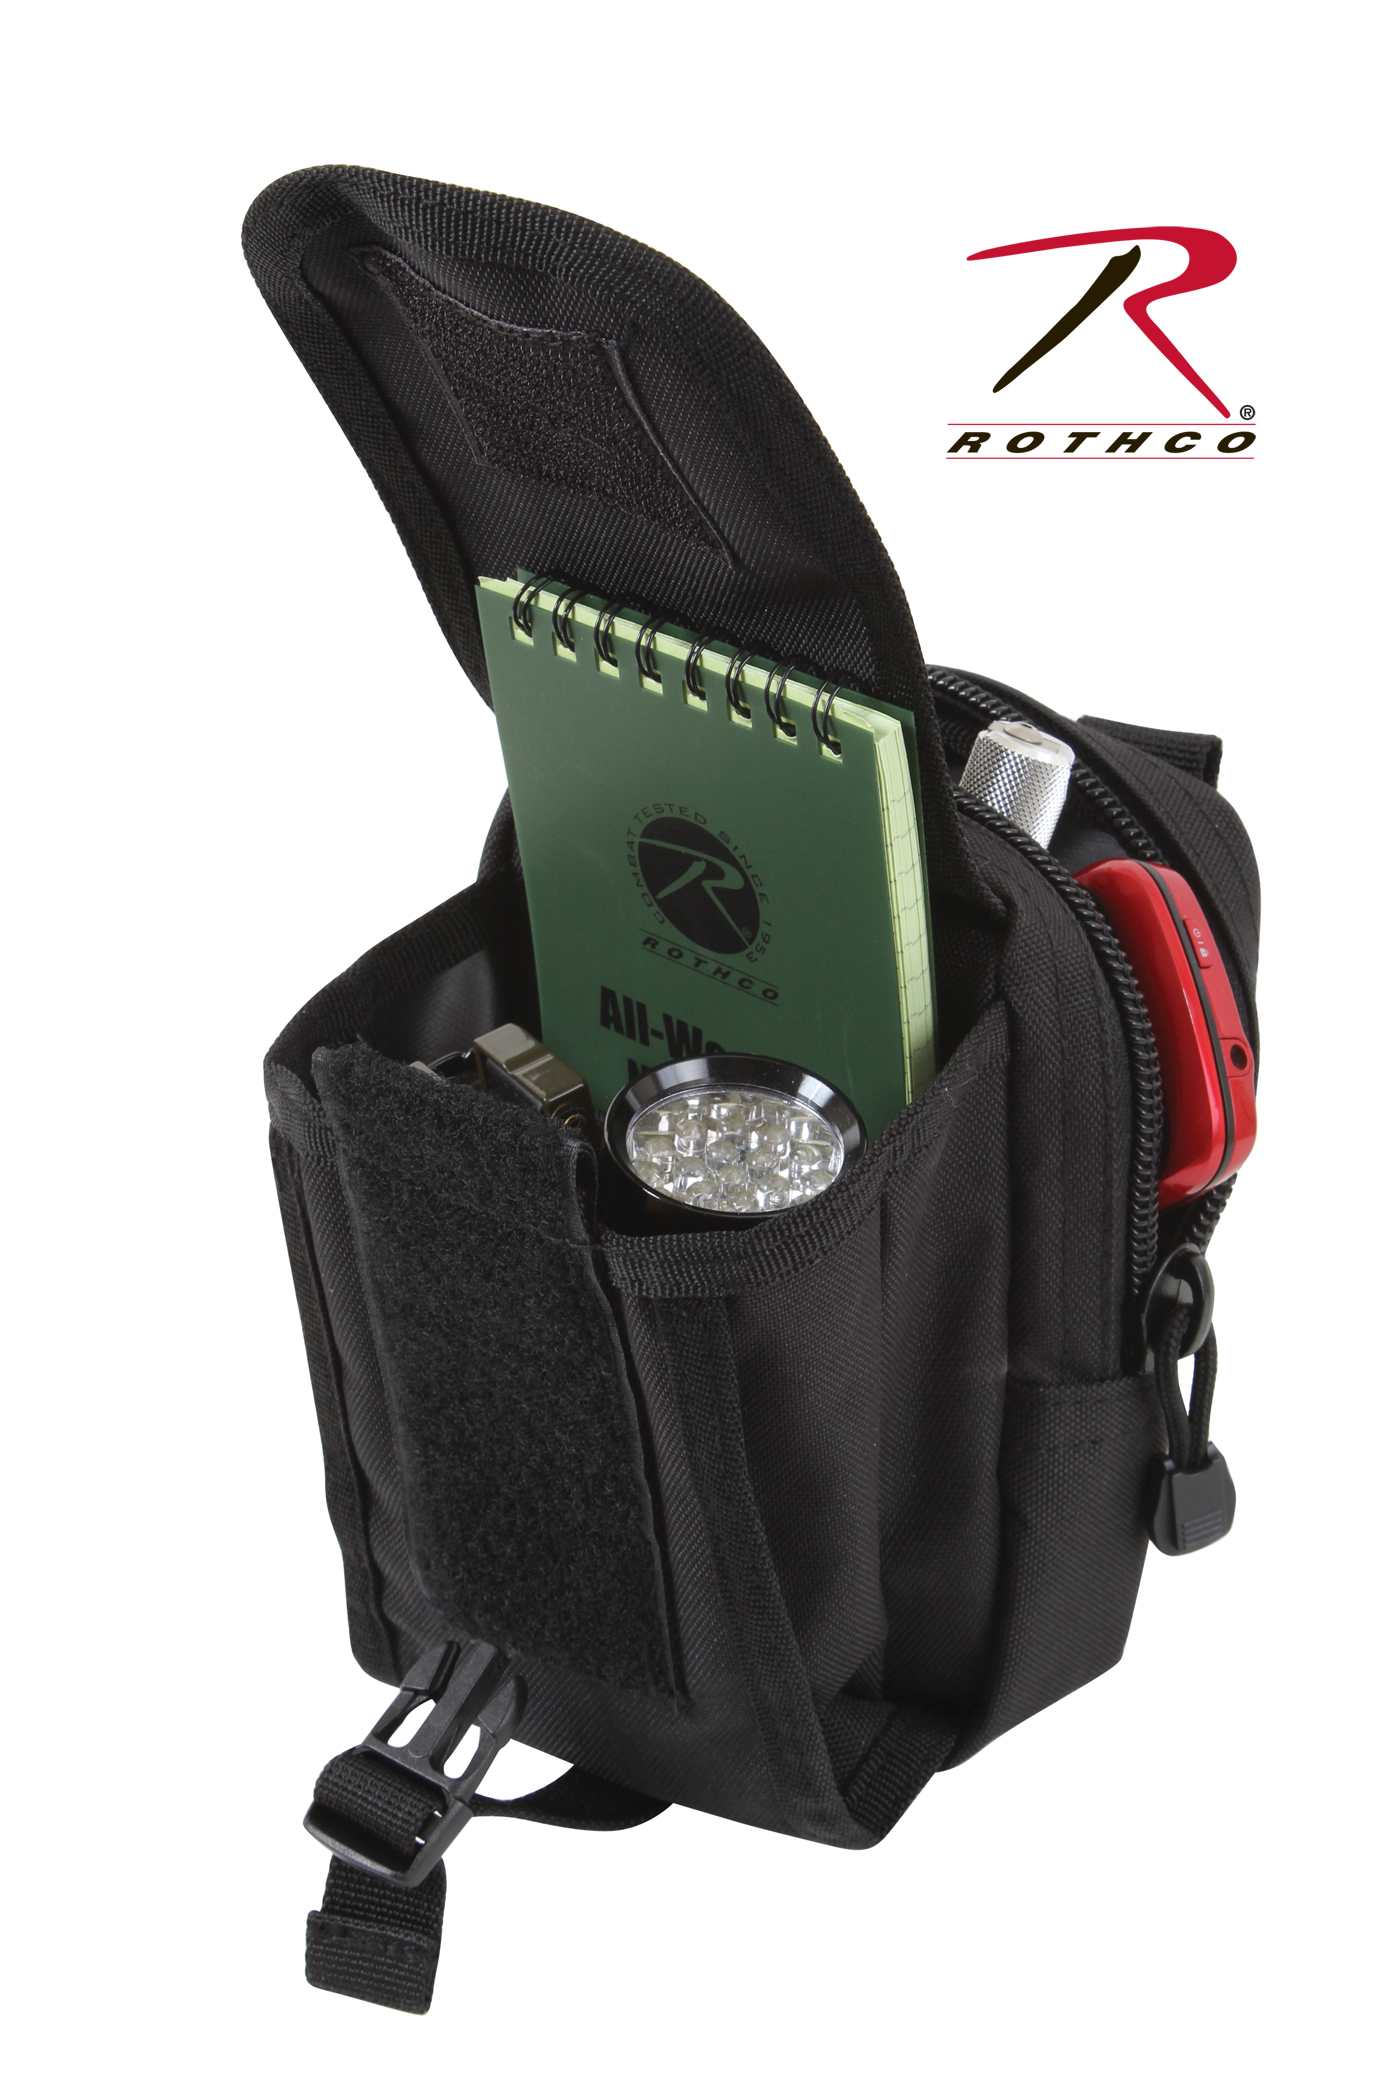 734b2047d7b ... military pouches, accessories pouch. Loading zoom